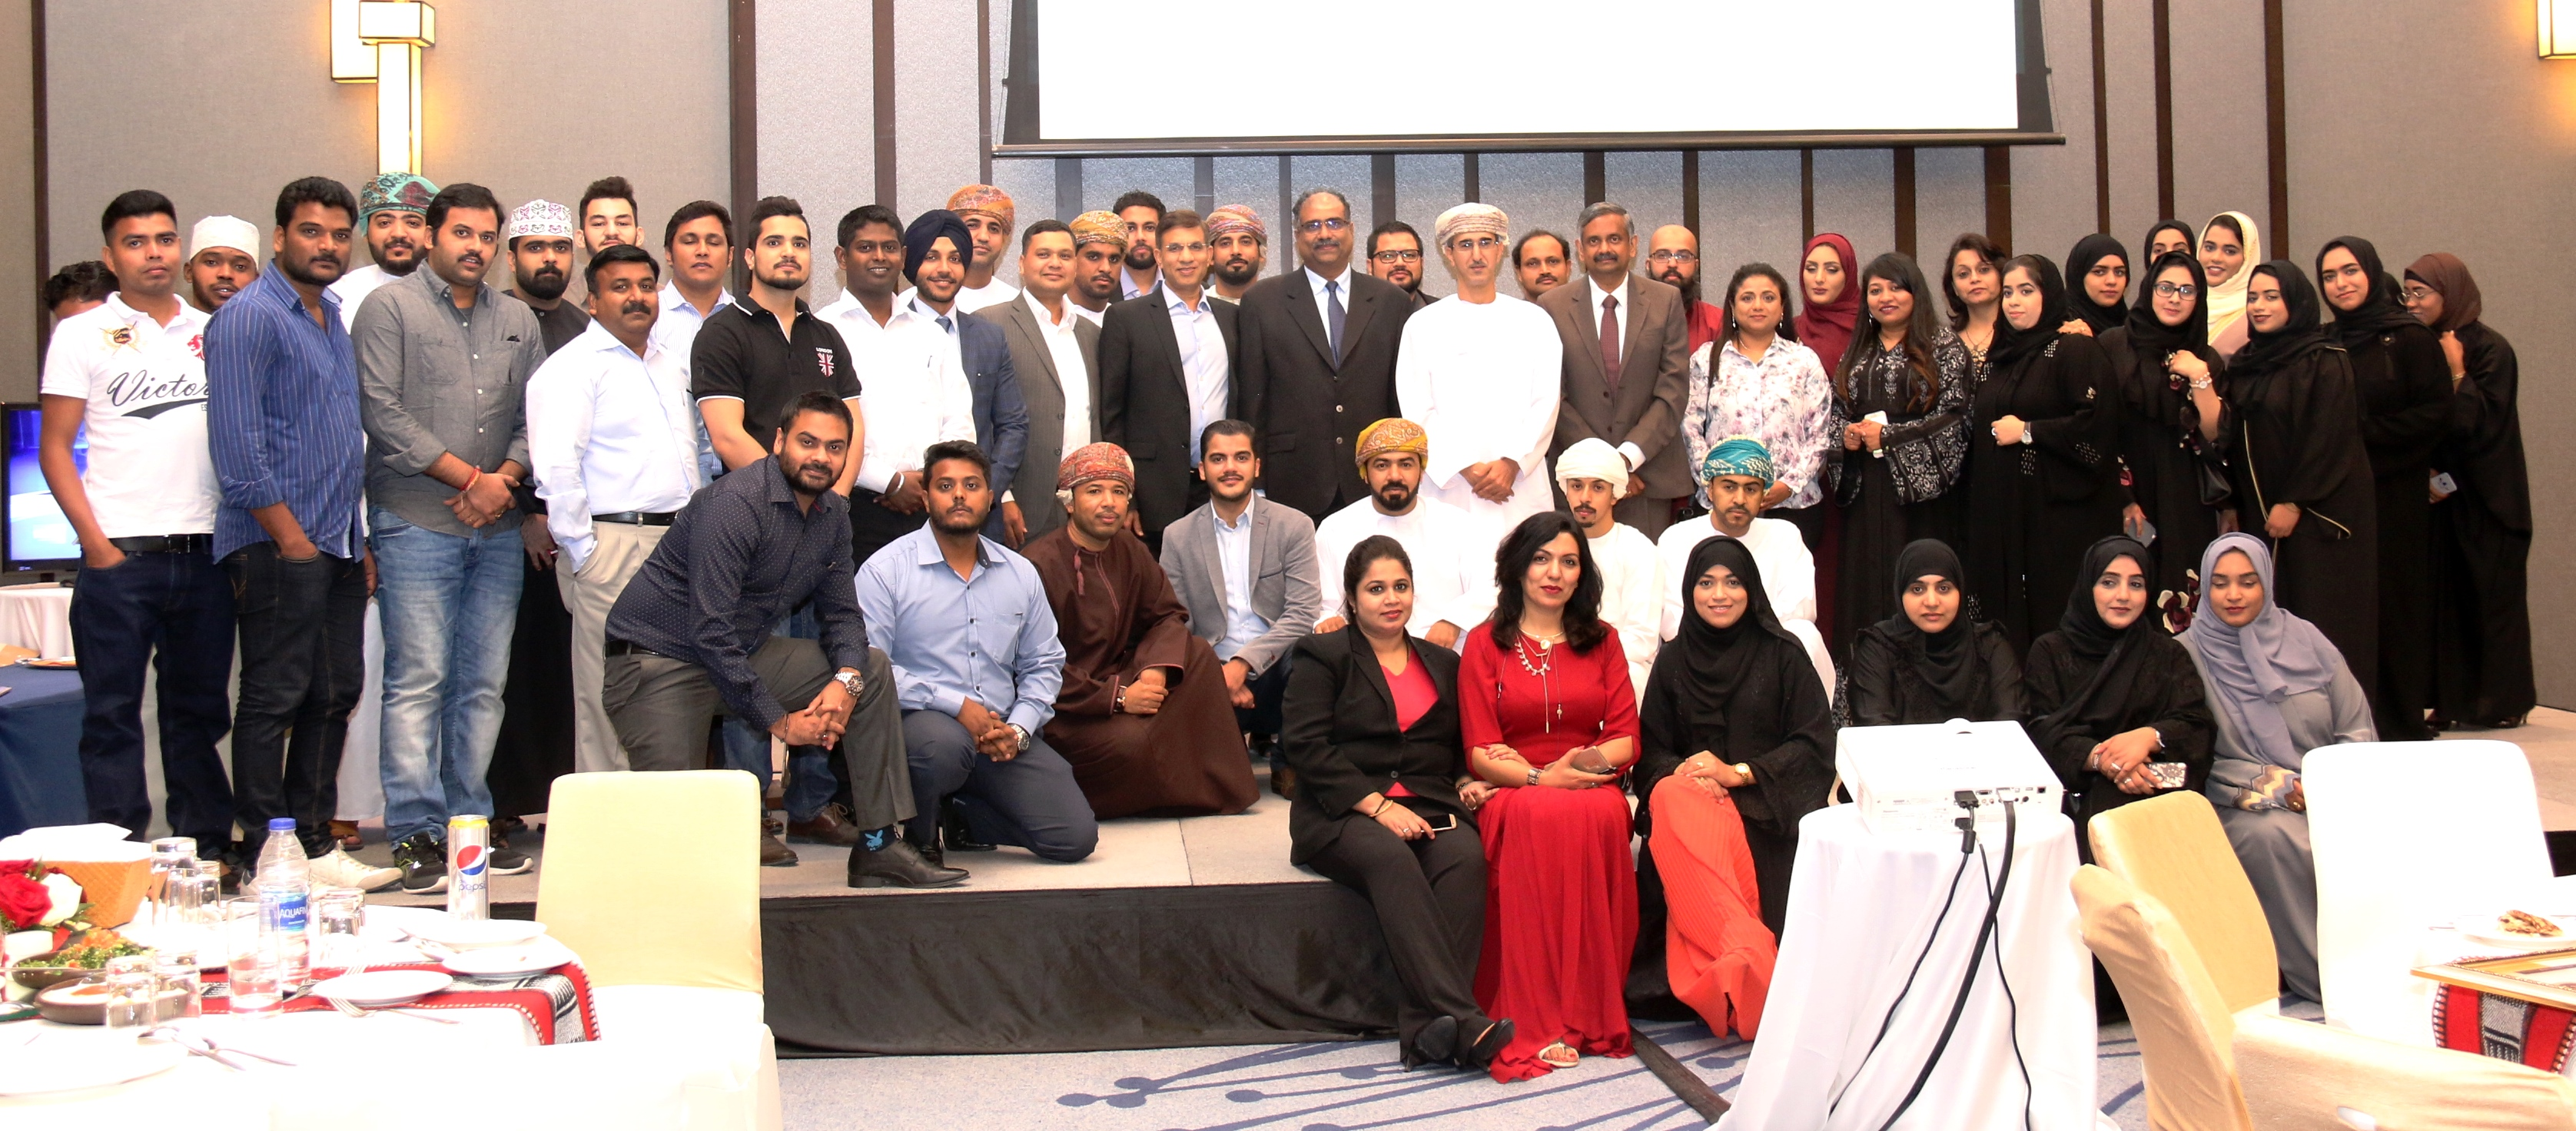 Infoline hosts annual iftar for its employees and customers